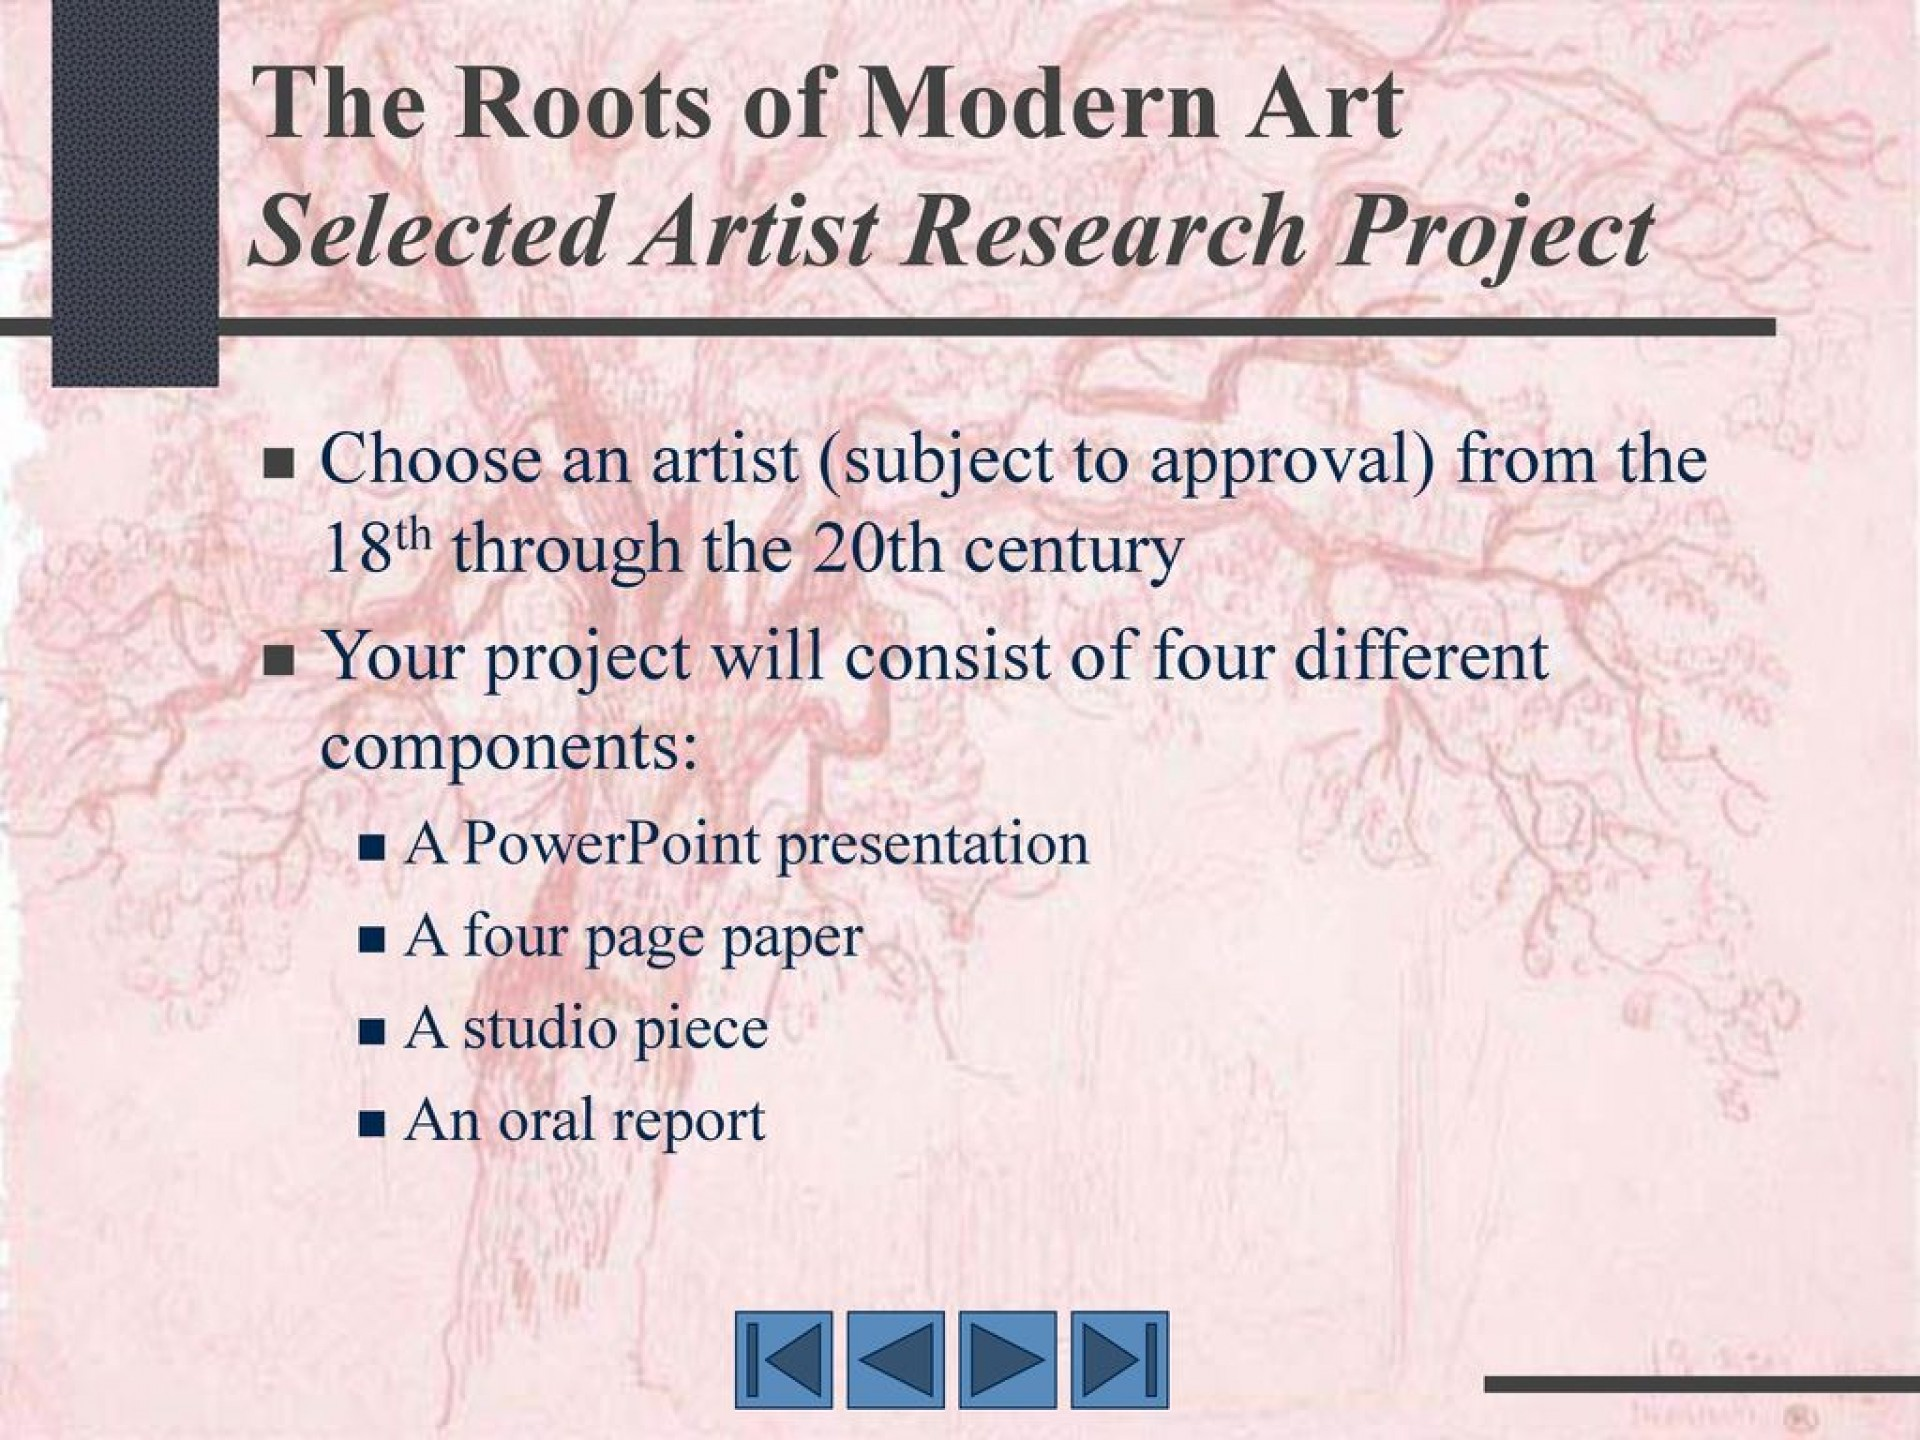 011 Research Paper Therootsofmodernartselectedartistresearchproject Component Of Wondrous Ppt Parts Chapter 1 1920